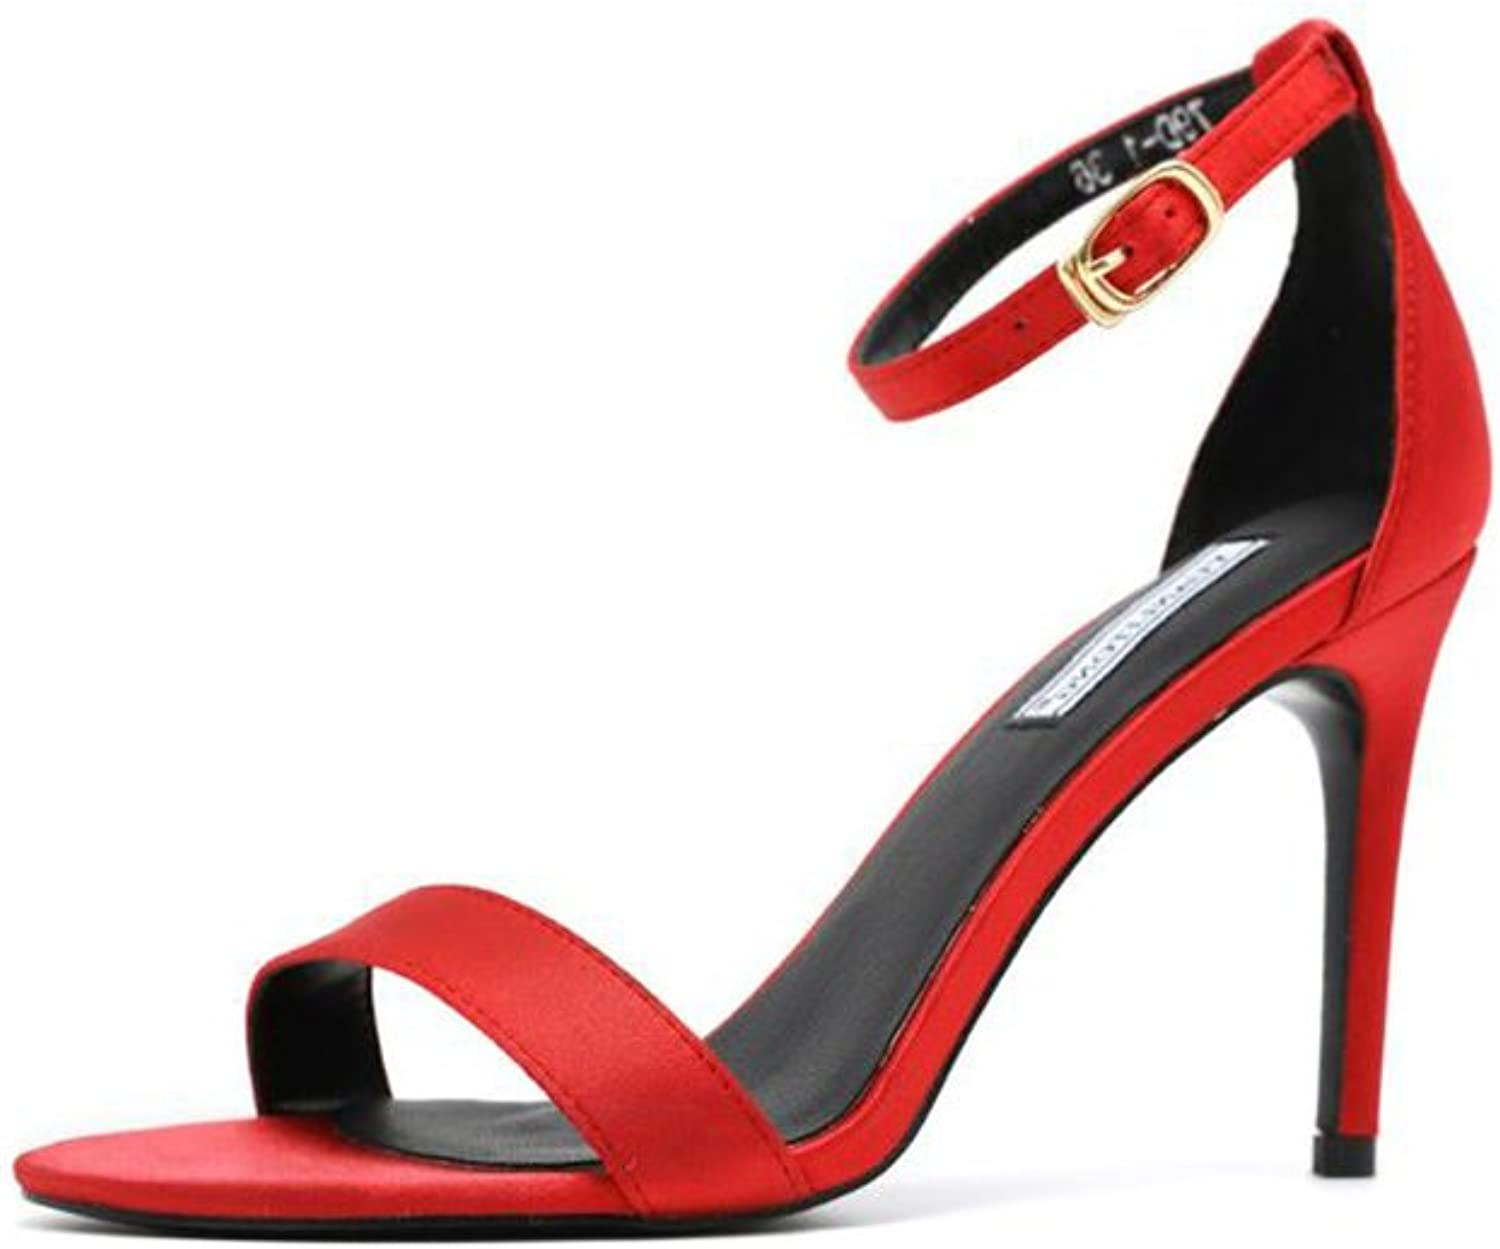 Women's High Heel Open Toe Ankle Buckle Strap Platform Evening Dress Casual Pump Sandal shoes